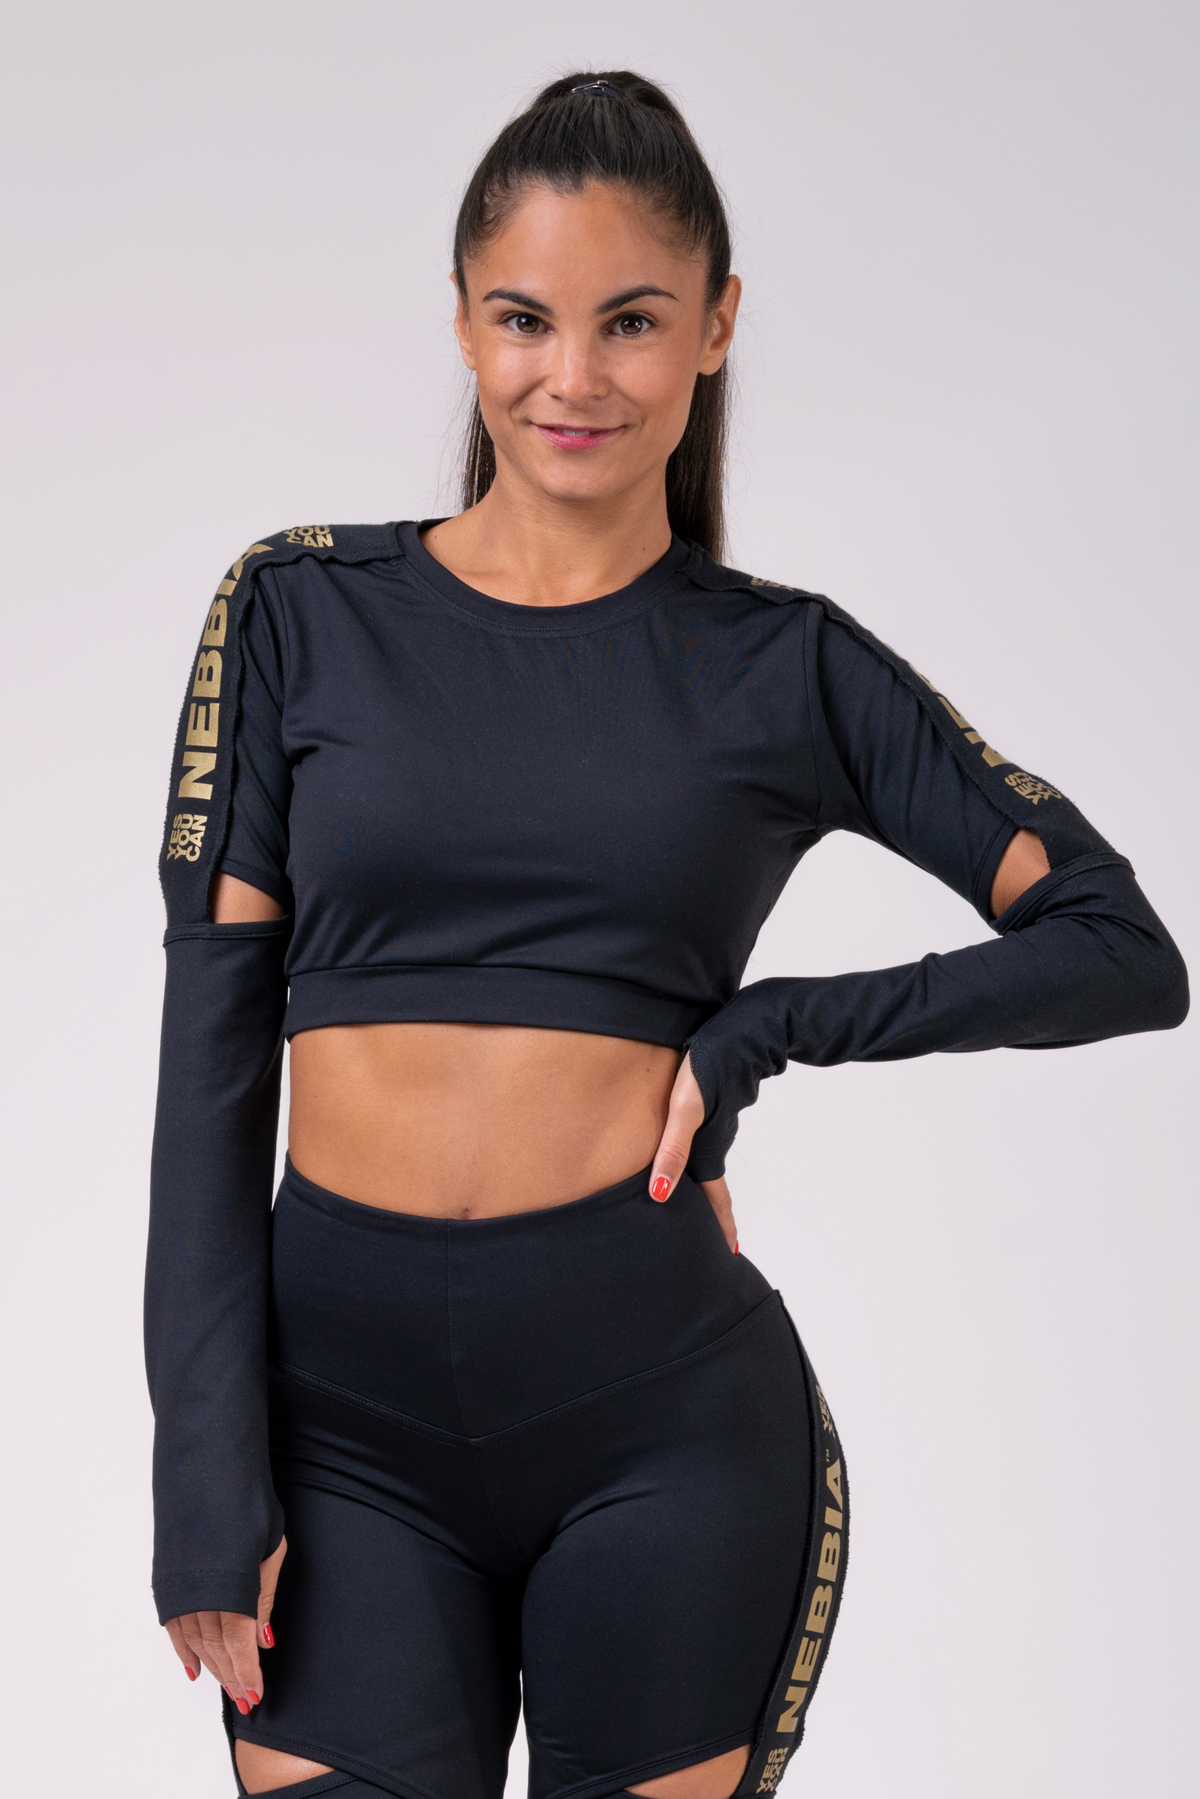 Женский топ Nebbia с рукавами Honey Bunny crop top 821 black